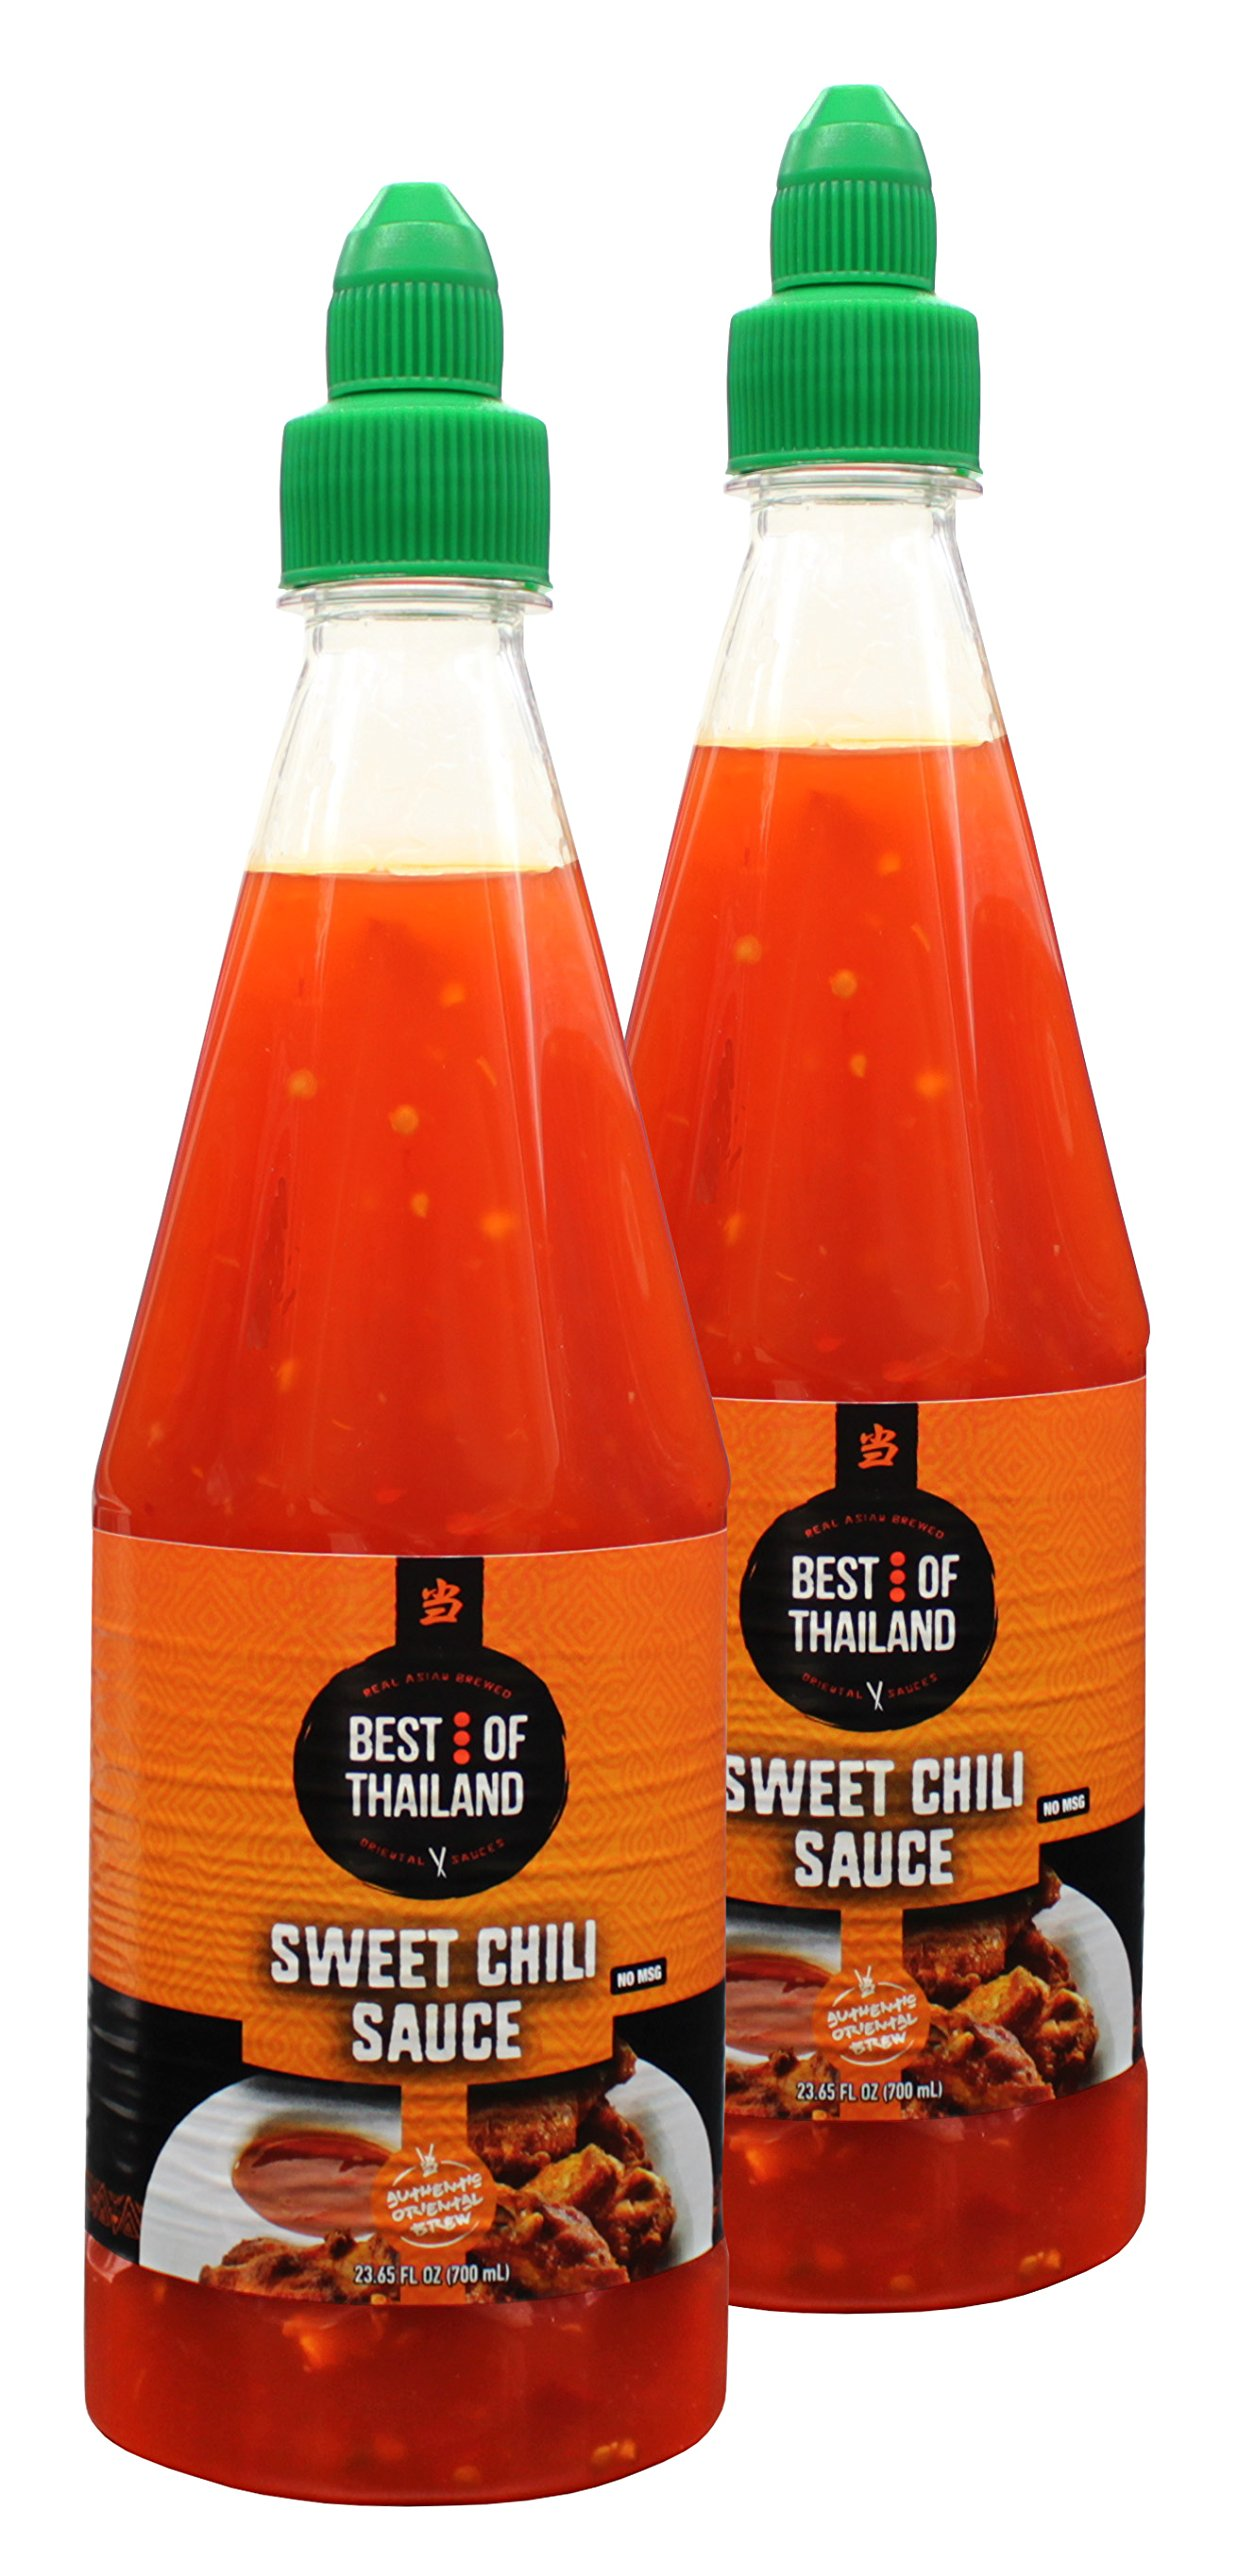 Sweet Chili Sauce (2 Pack) Real Asian Brewed – No MSG – Kosher Certified – Sweet & Spicy Dressing for Barbeque Chicken, Grilled Food, Fish, Meat – Convenient Bottle Size: 23.6 fl-oz – Best of Thailand by Best of Thailand